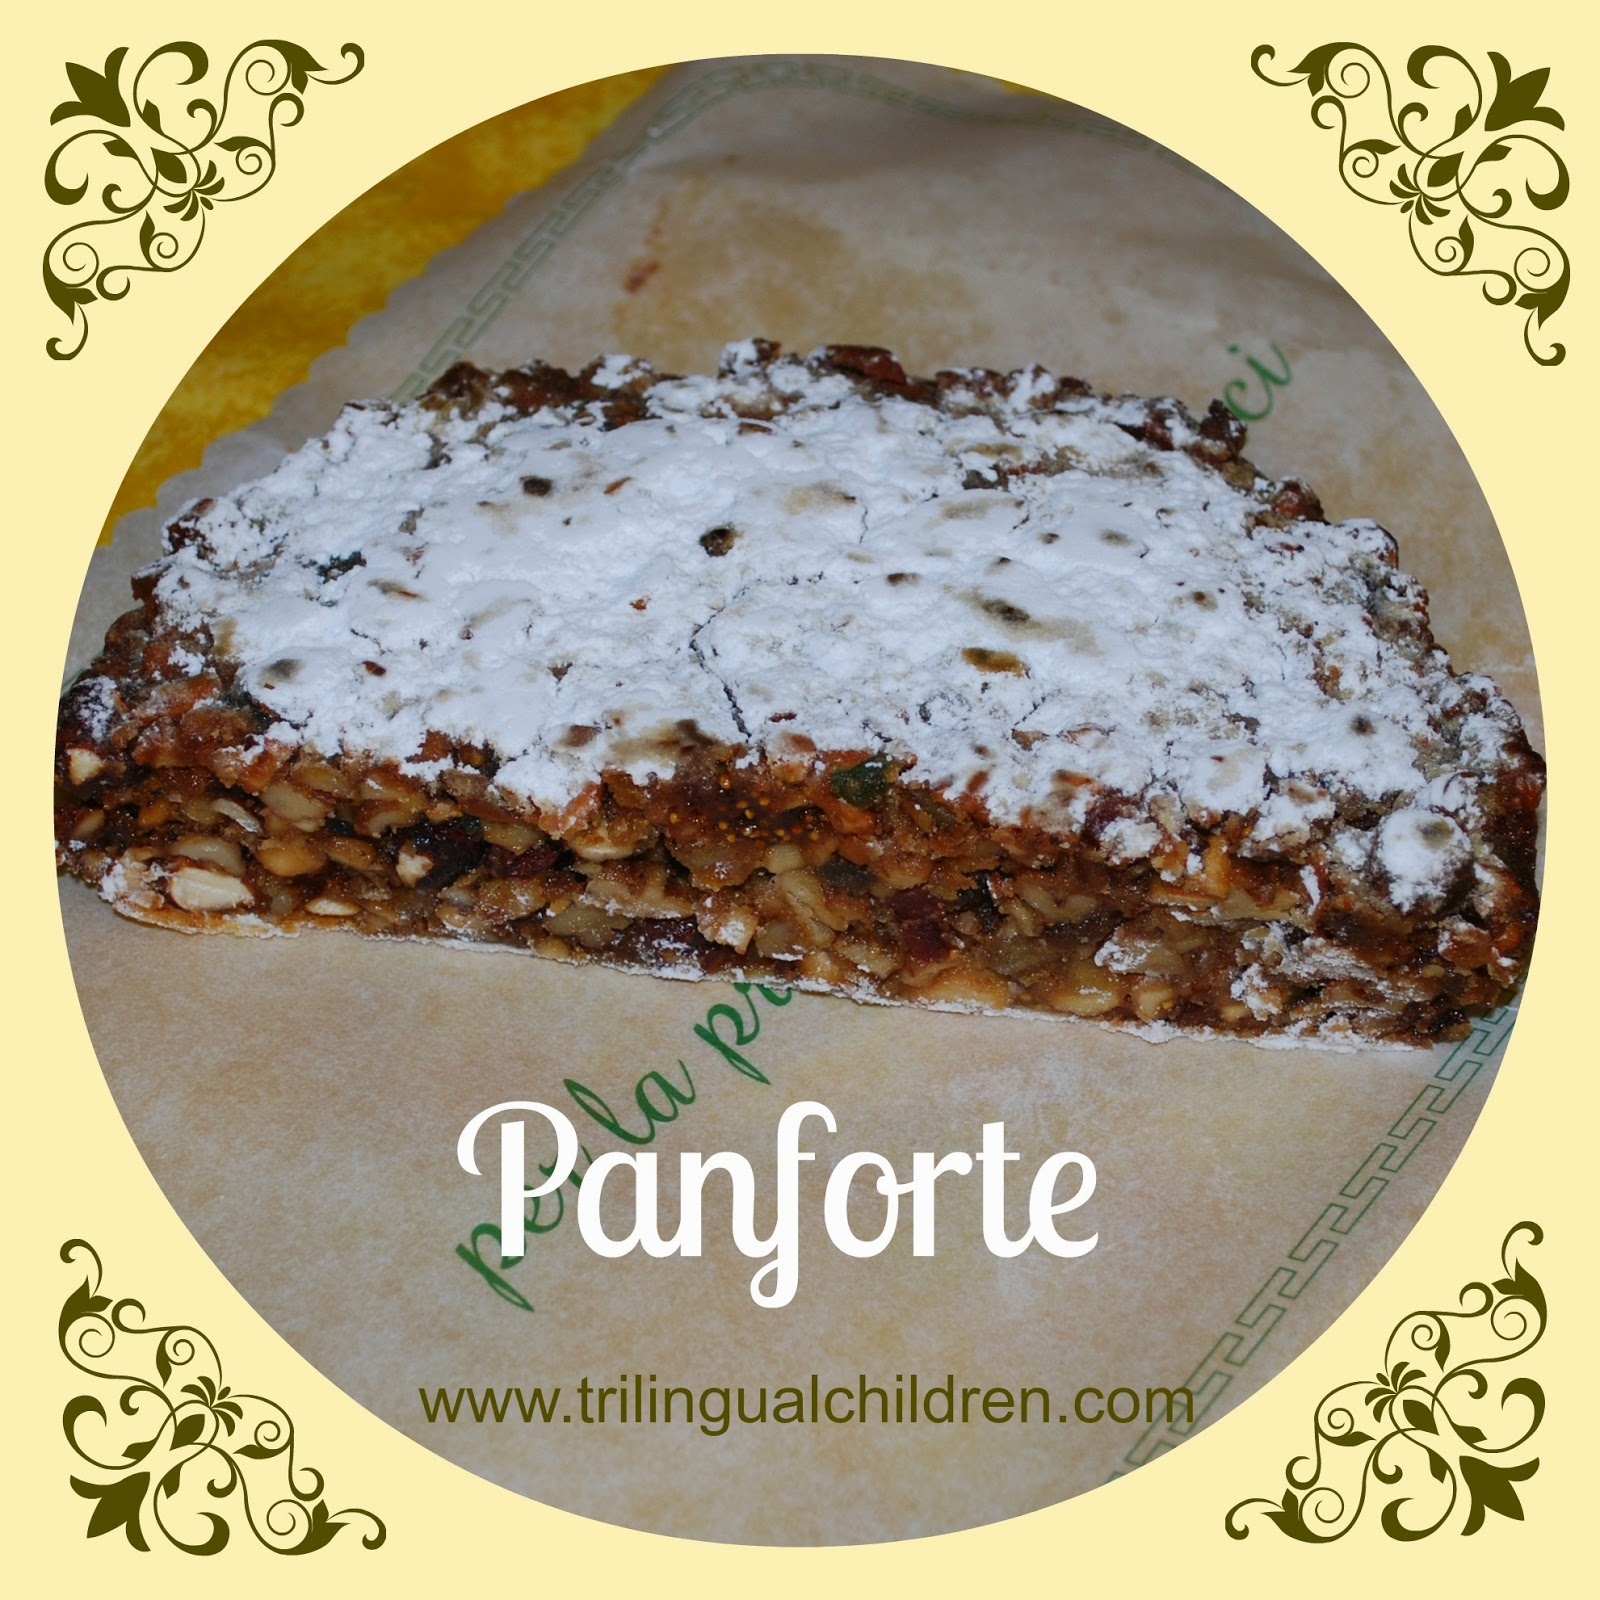 Panforte Italian Christmas sweet